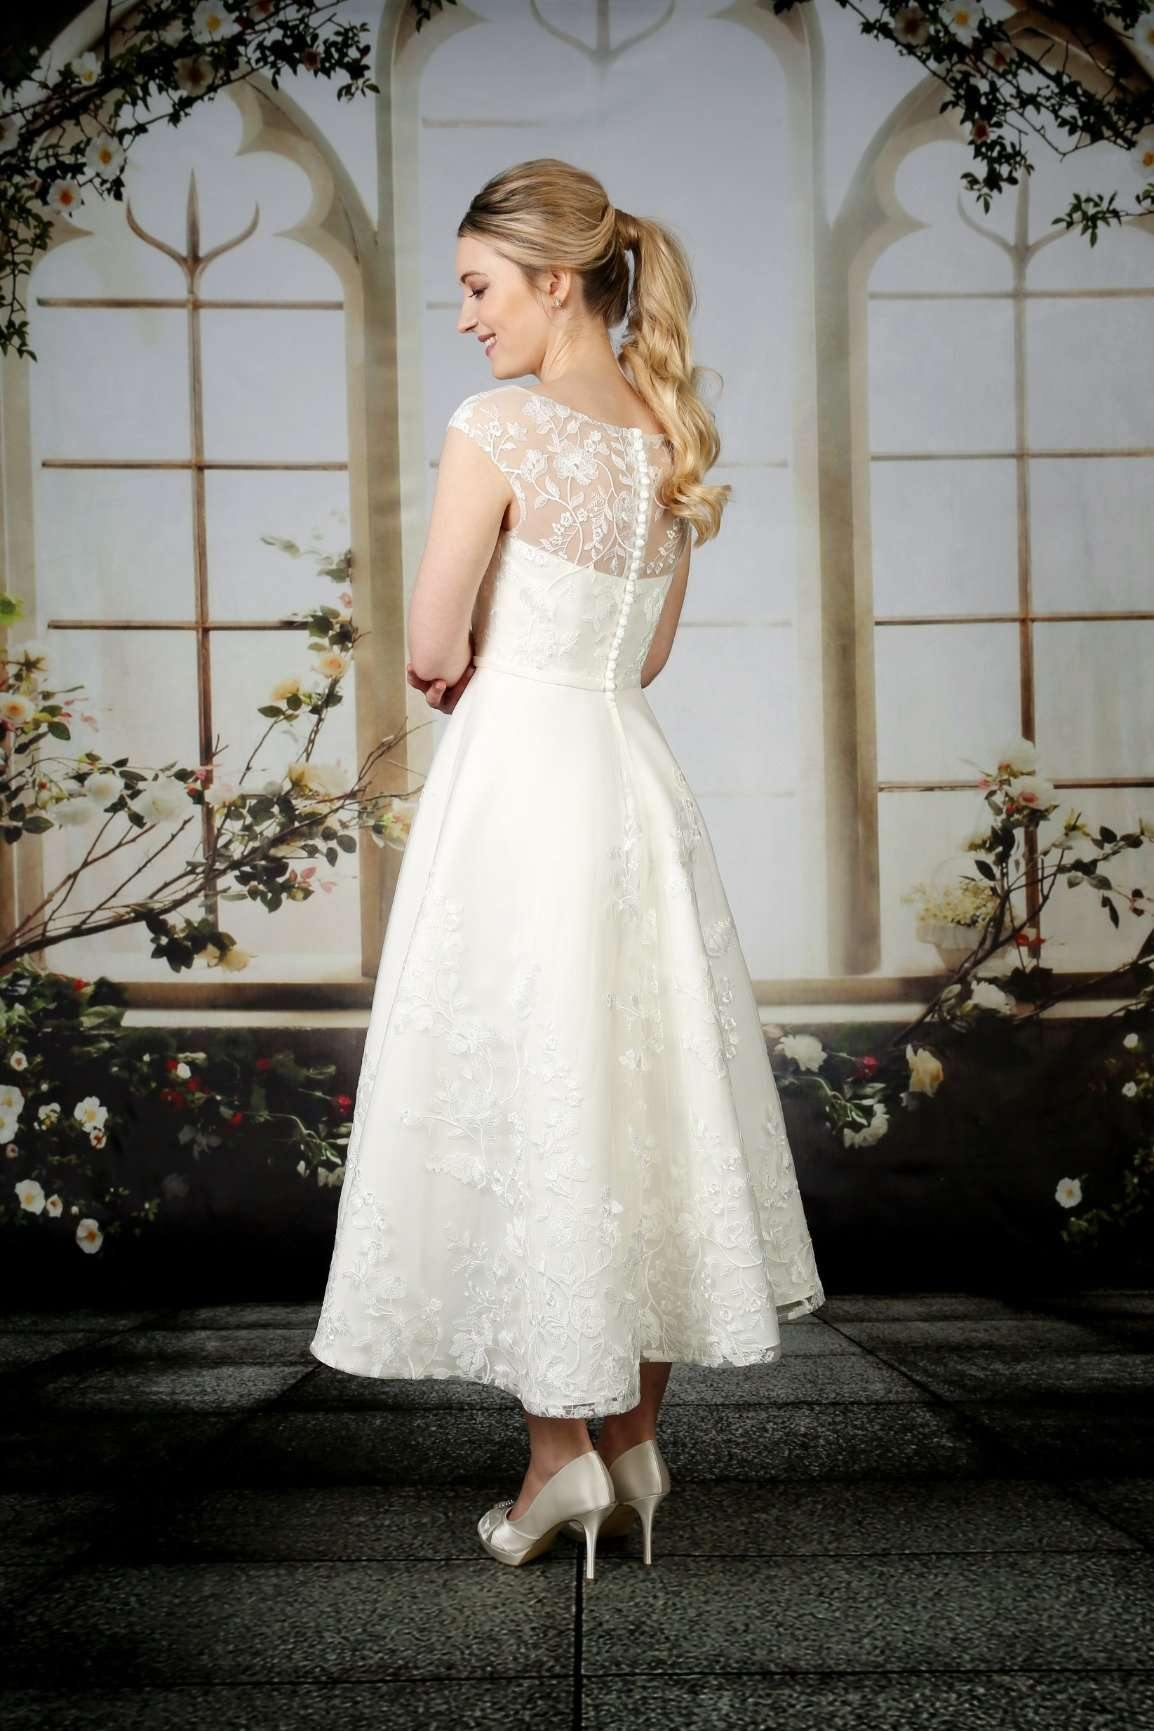 NIEVE COUTURE - Molly - Adore Bridal and Occasion Wear